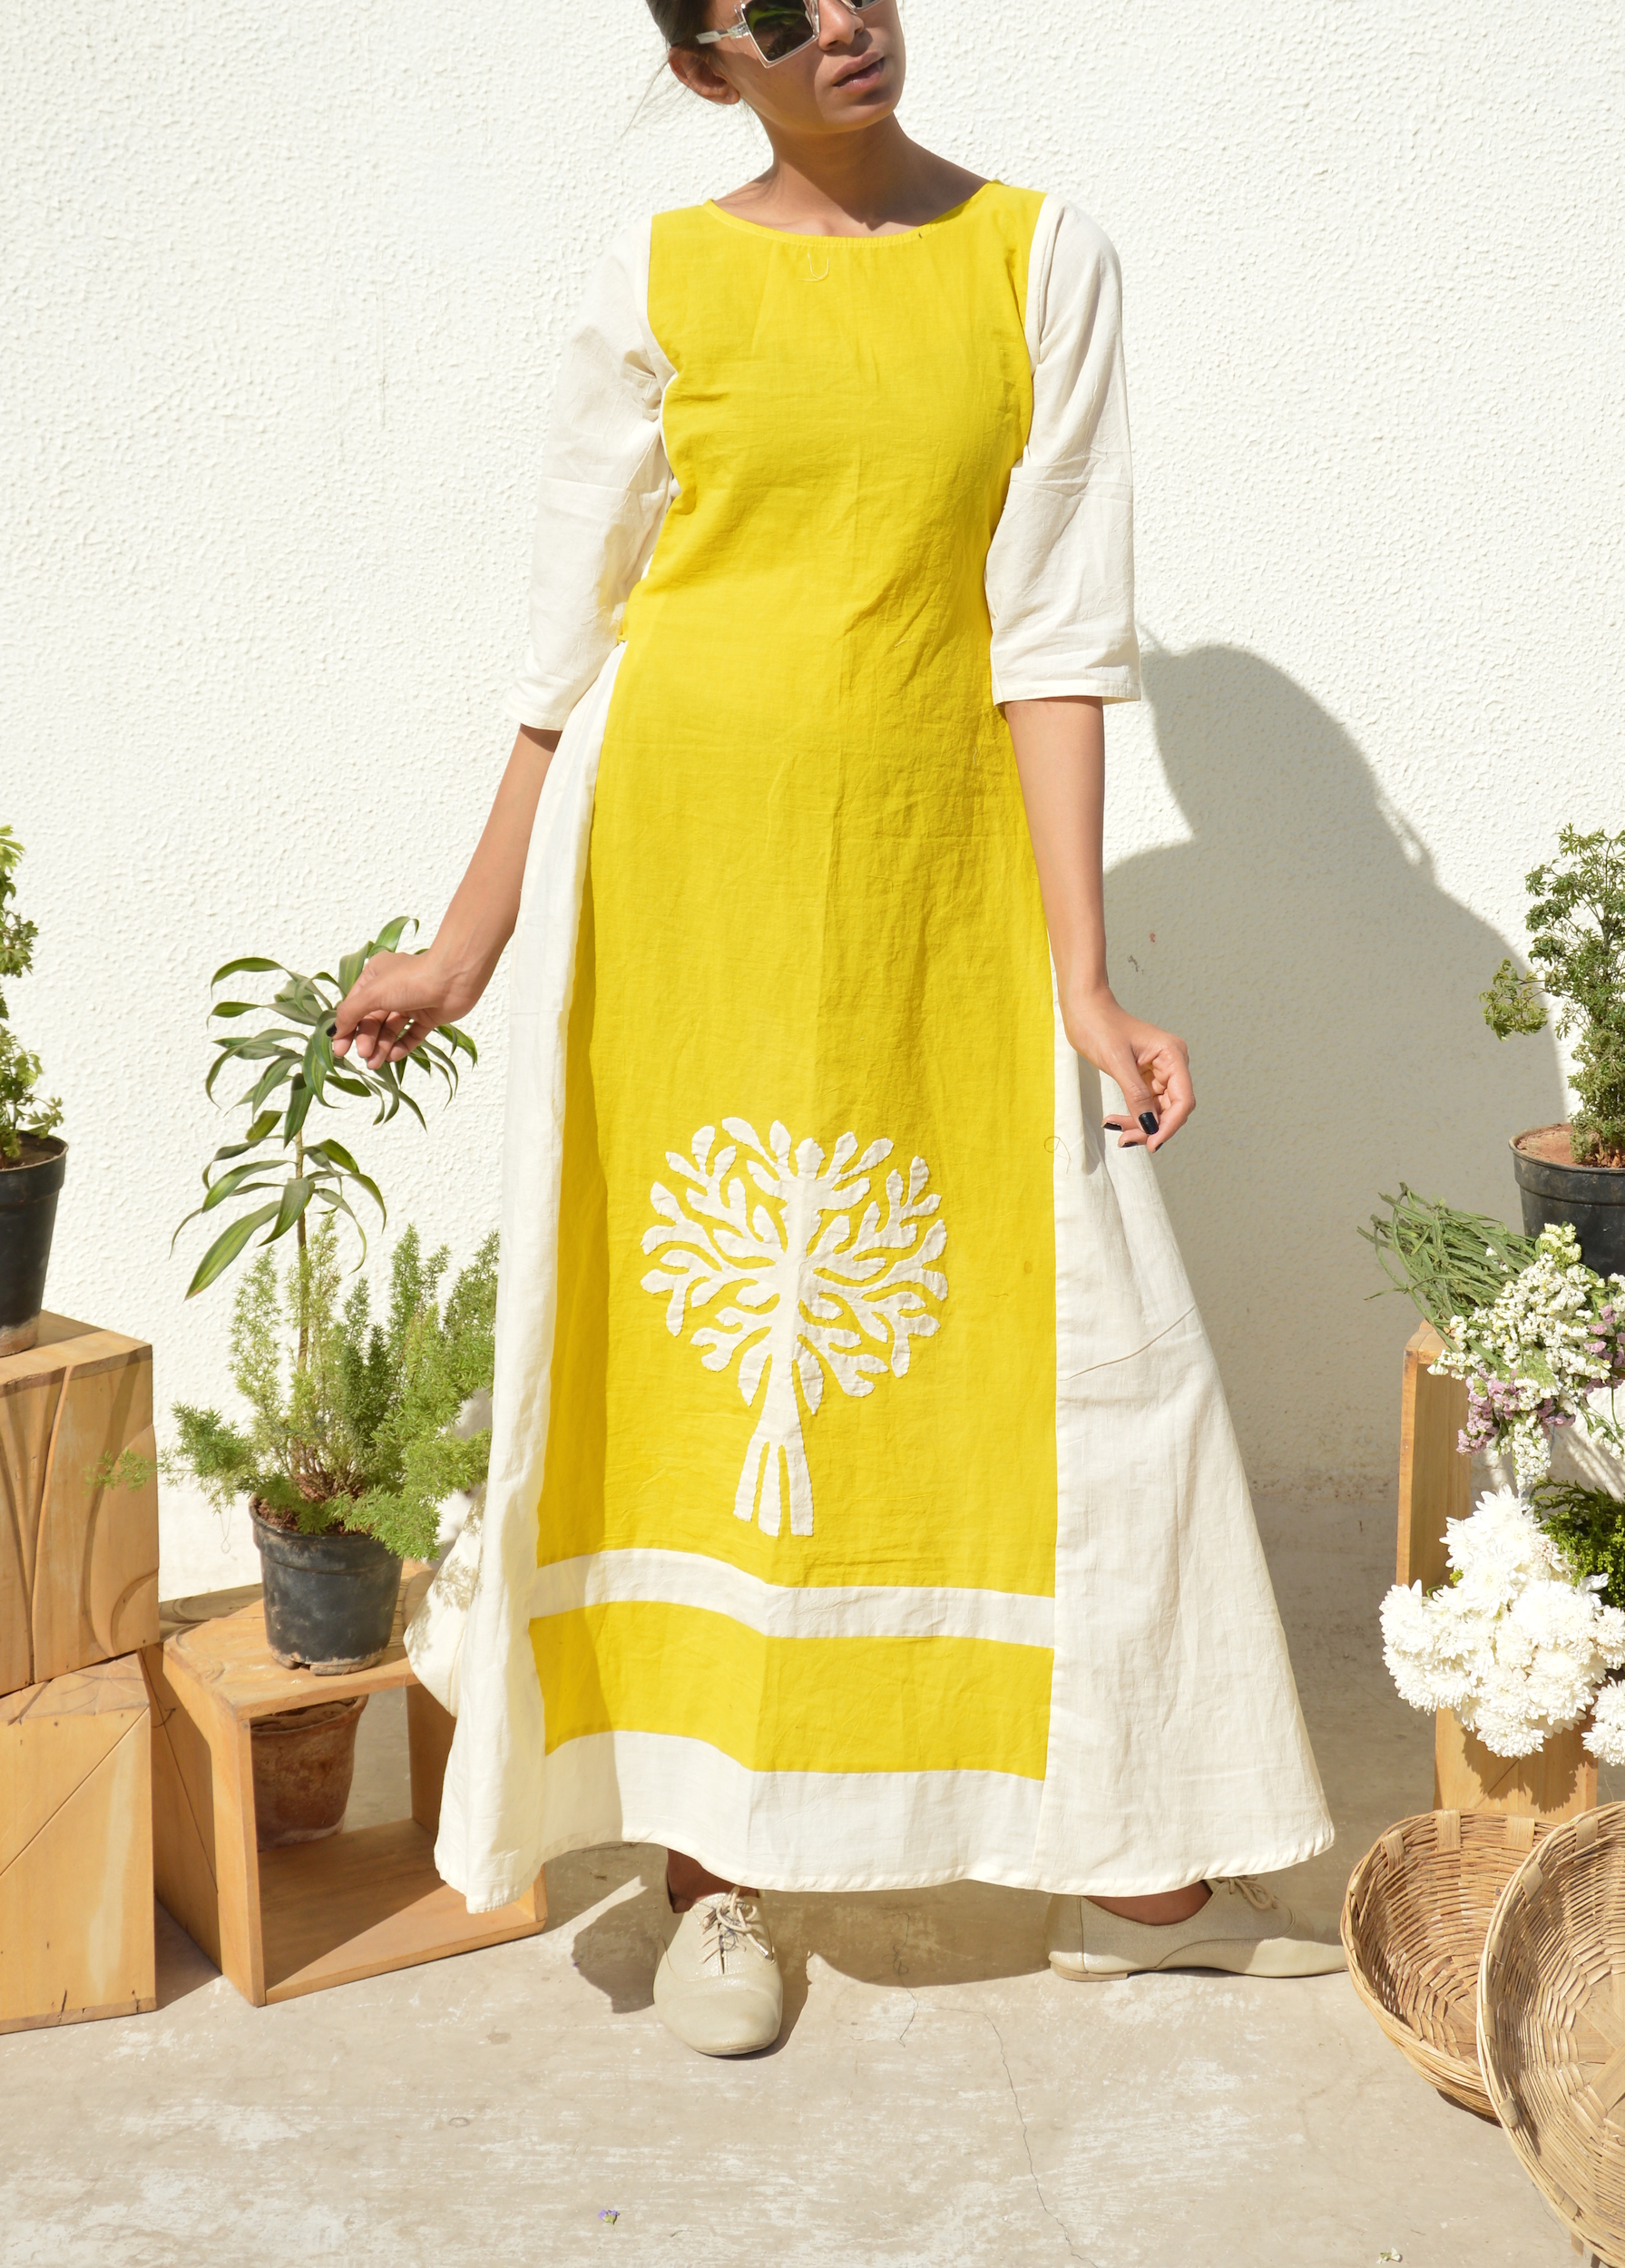 Yellow-white applique dress